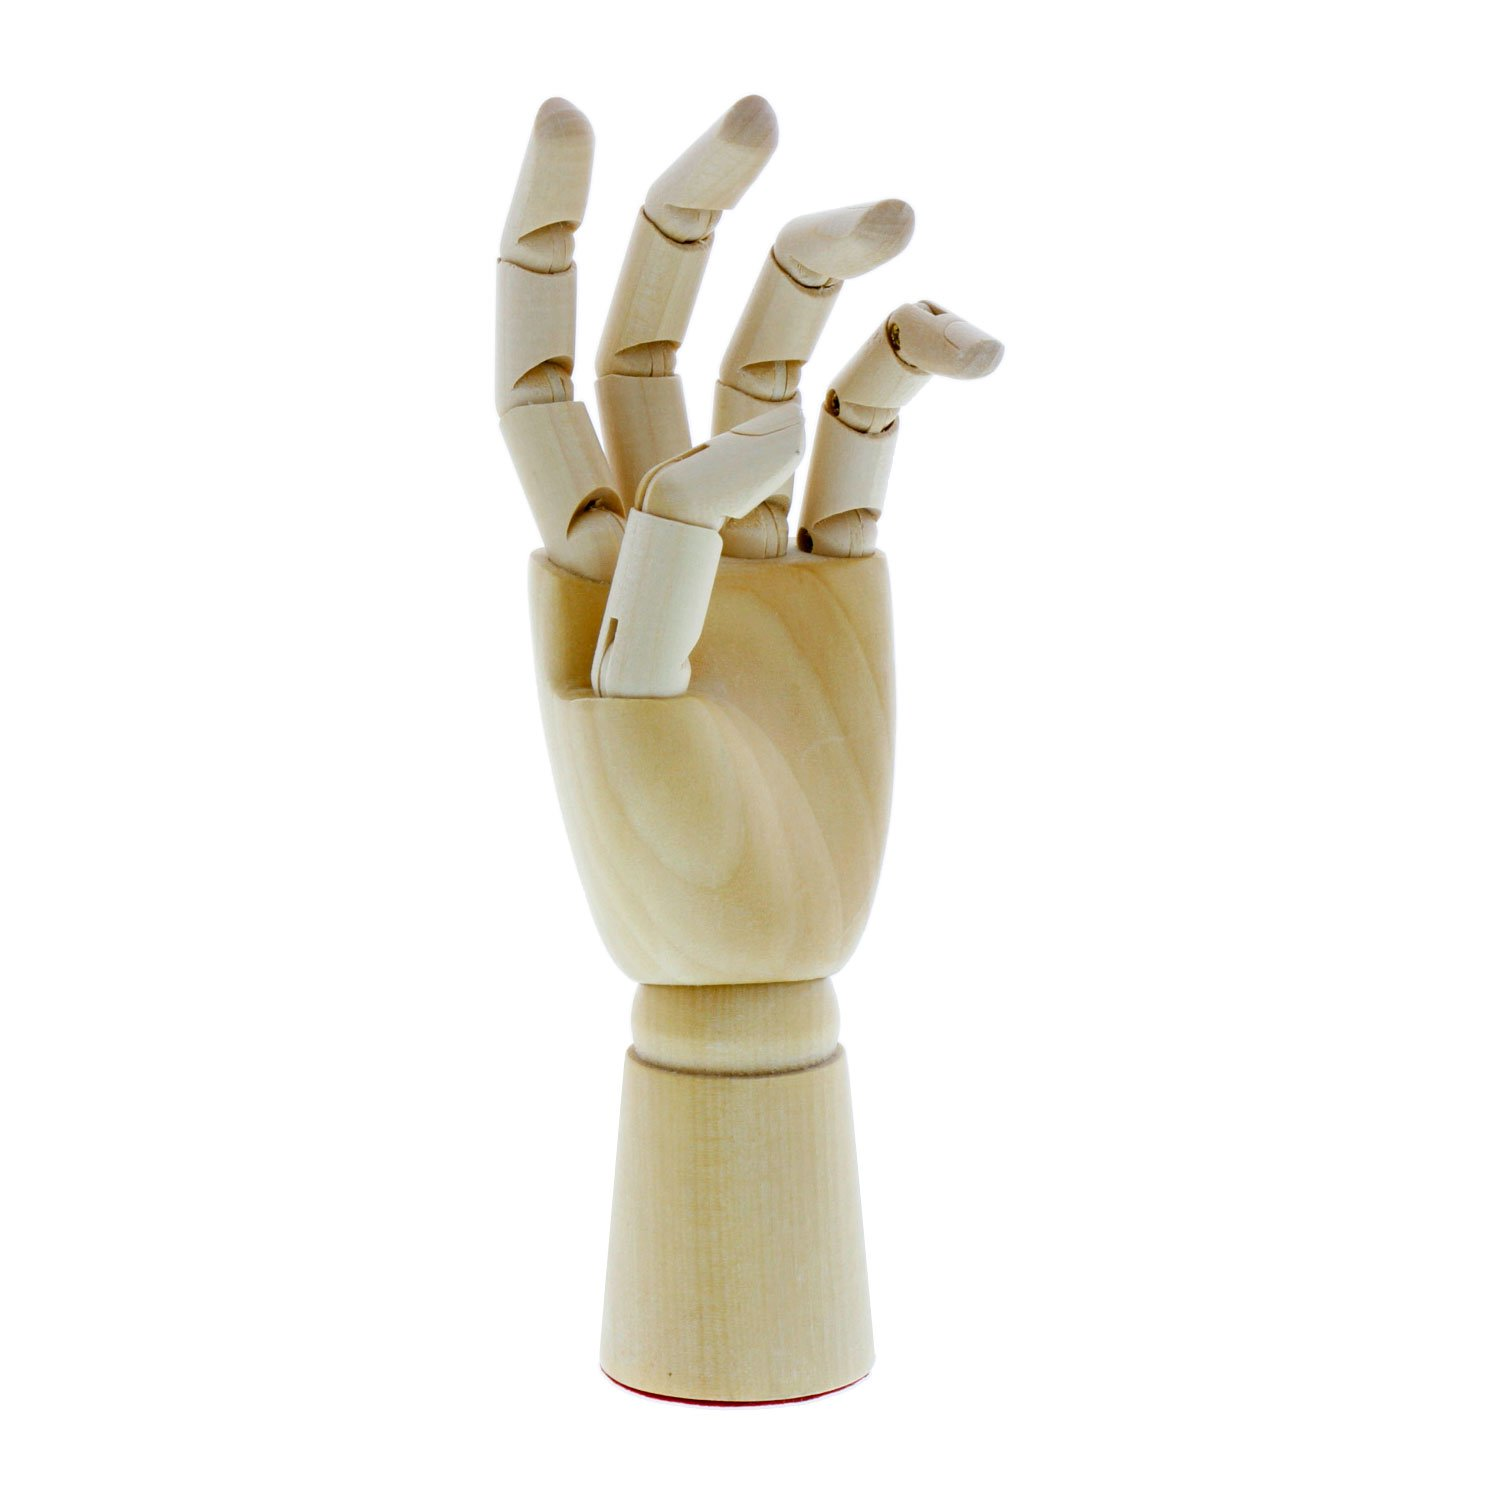 US Art Supply Artist Drawing Hand Manikin Articulated Wooden Mannequin (7